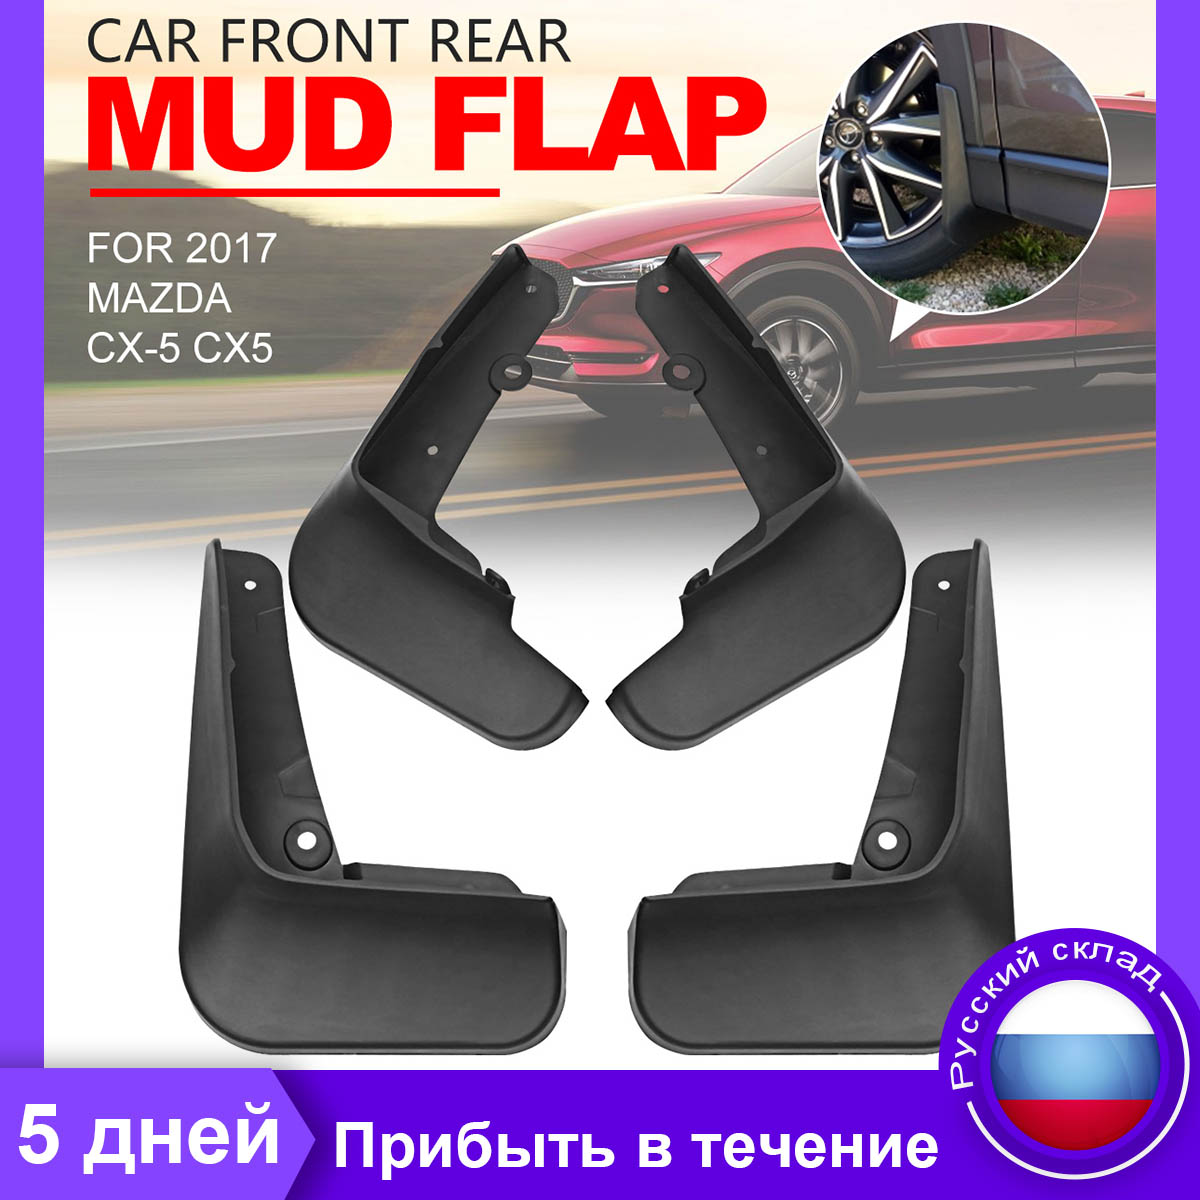 Car Mudguards for Mazda CX-5 CX5 2nd Gen 2017 2018 2019 Car Mudguards Fender Splash Guards Mud Flaps Accessories Front and Rear Set of 4Pcs